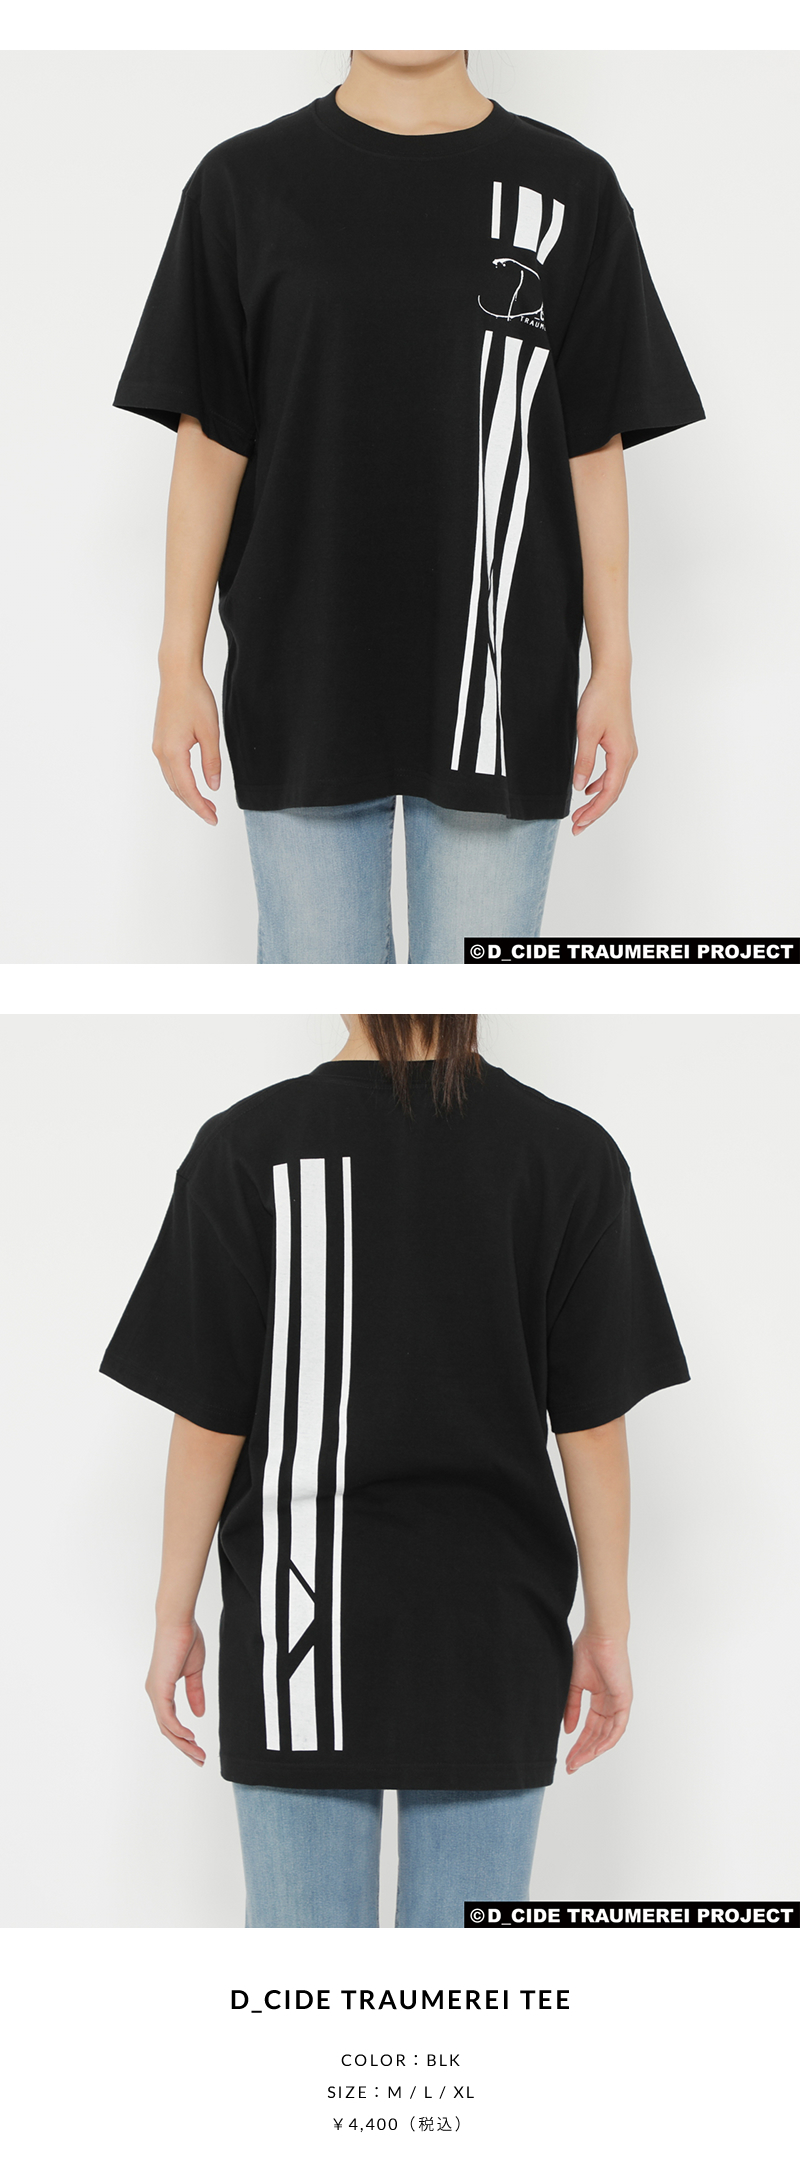 D_CIDE TRAUMEREI TEE